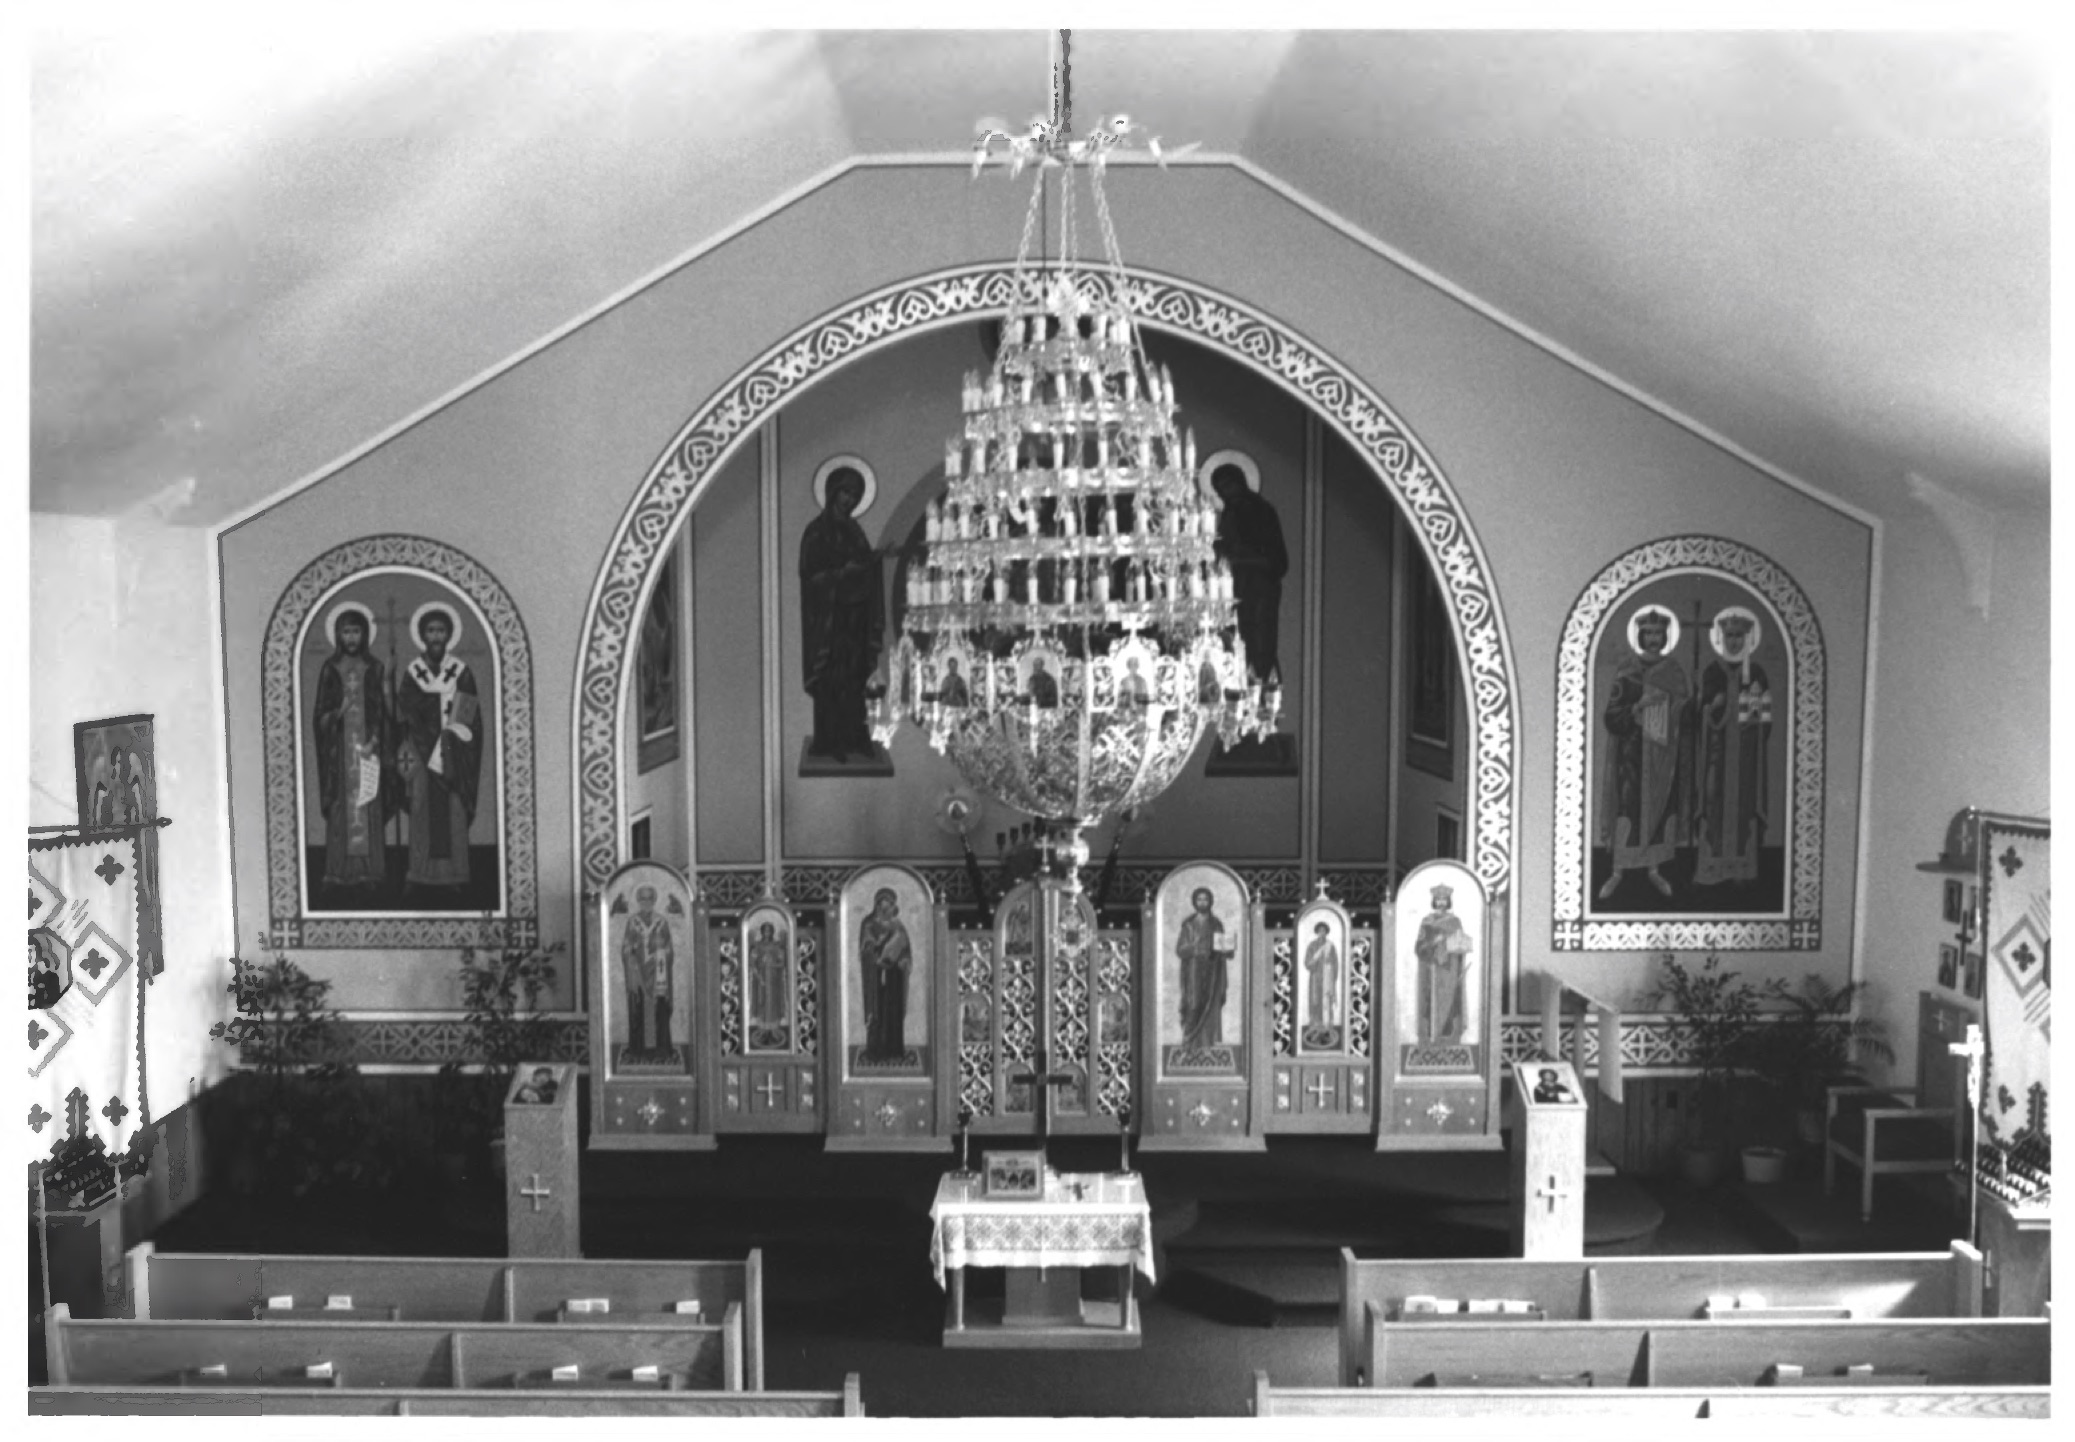 1987 photograph of the interior of St. Michael's Ukrainian Catholic Church, located at 1025 S. 11th Street.